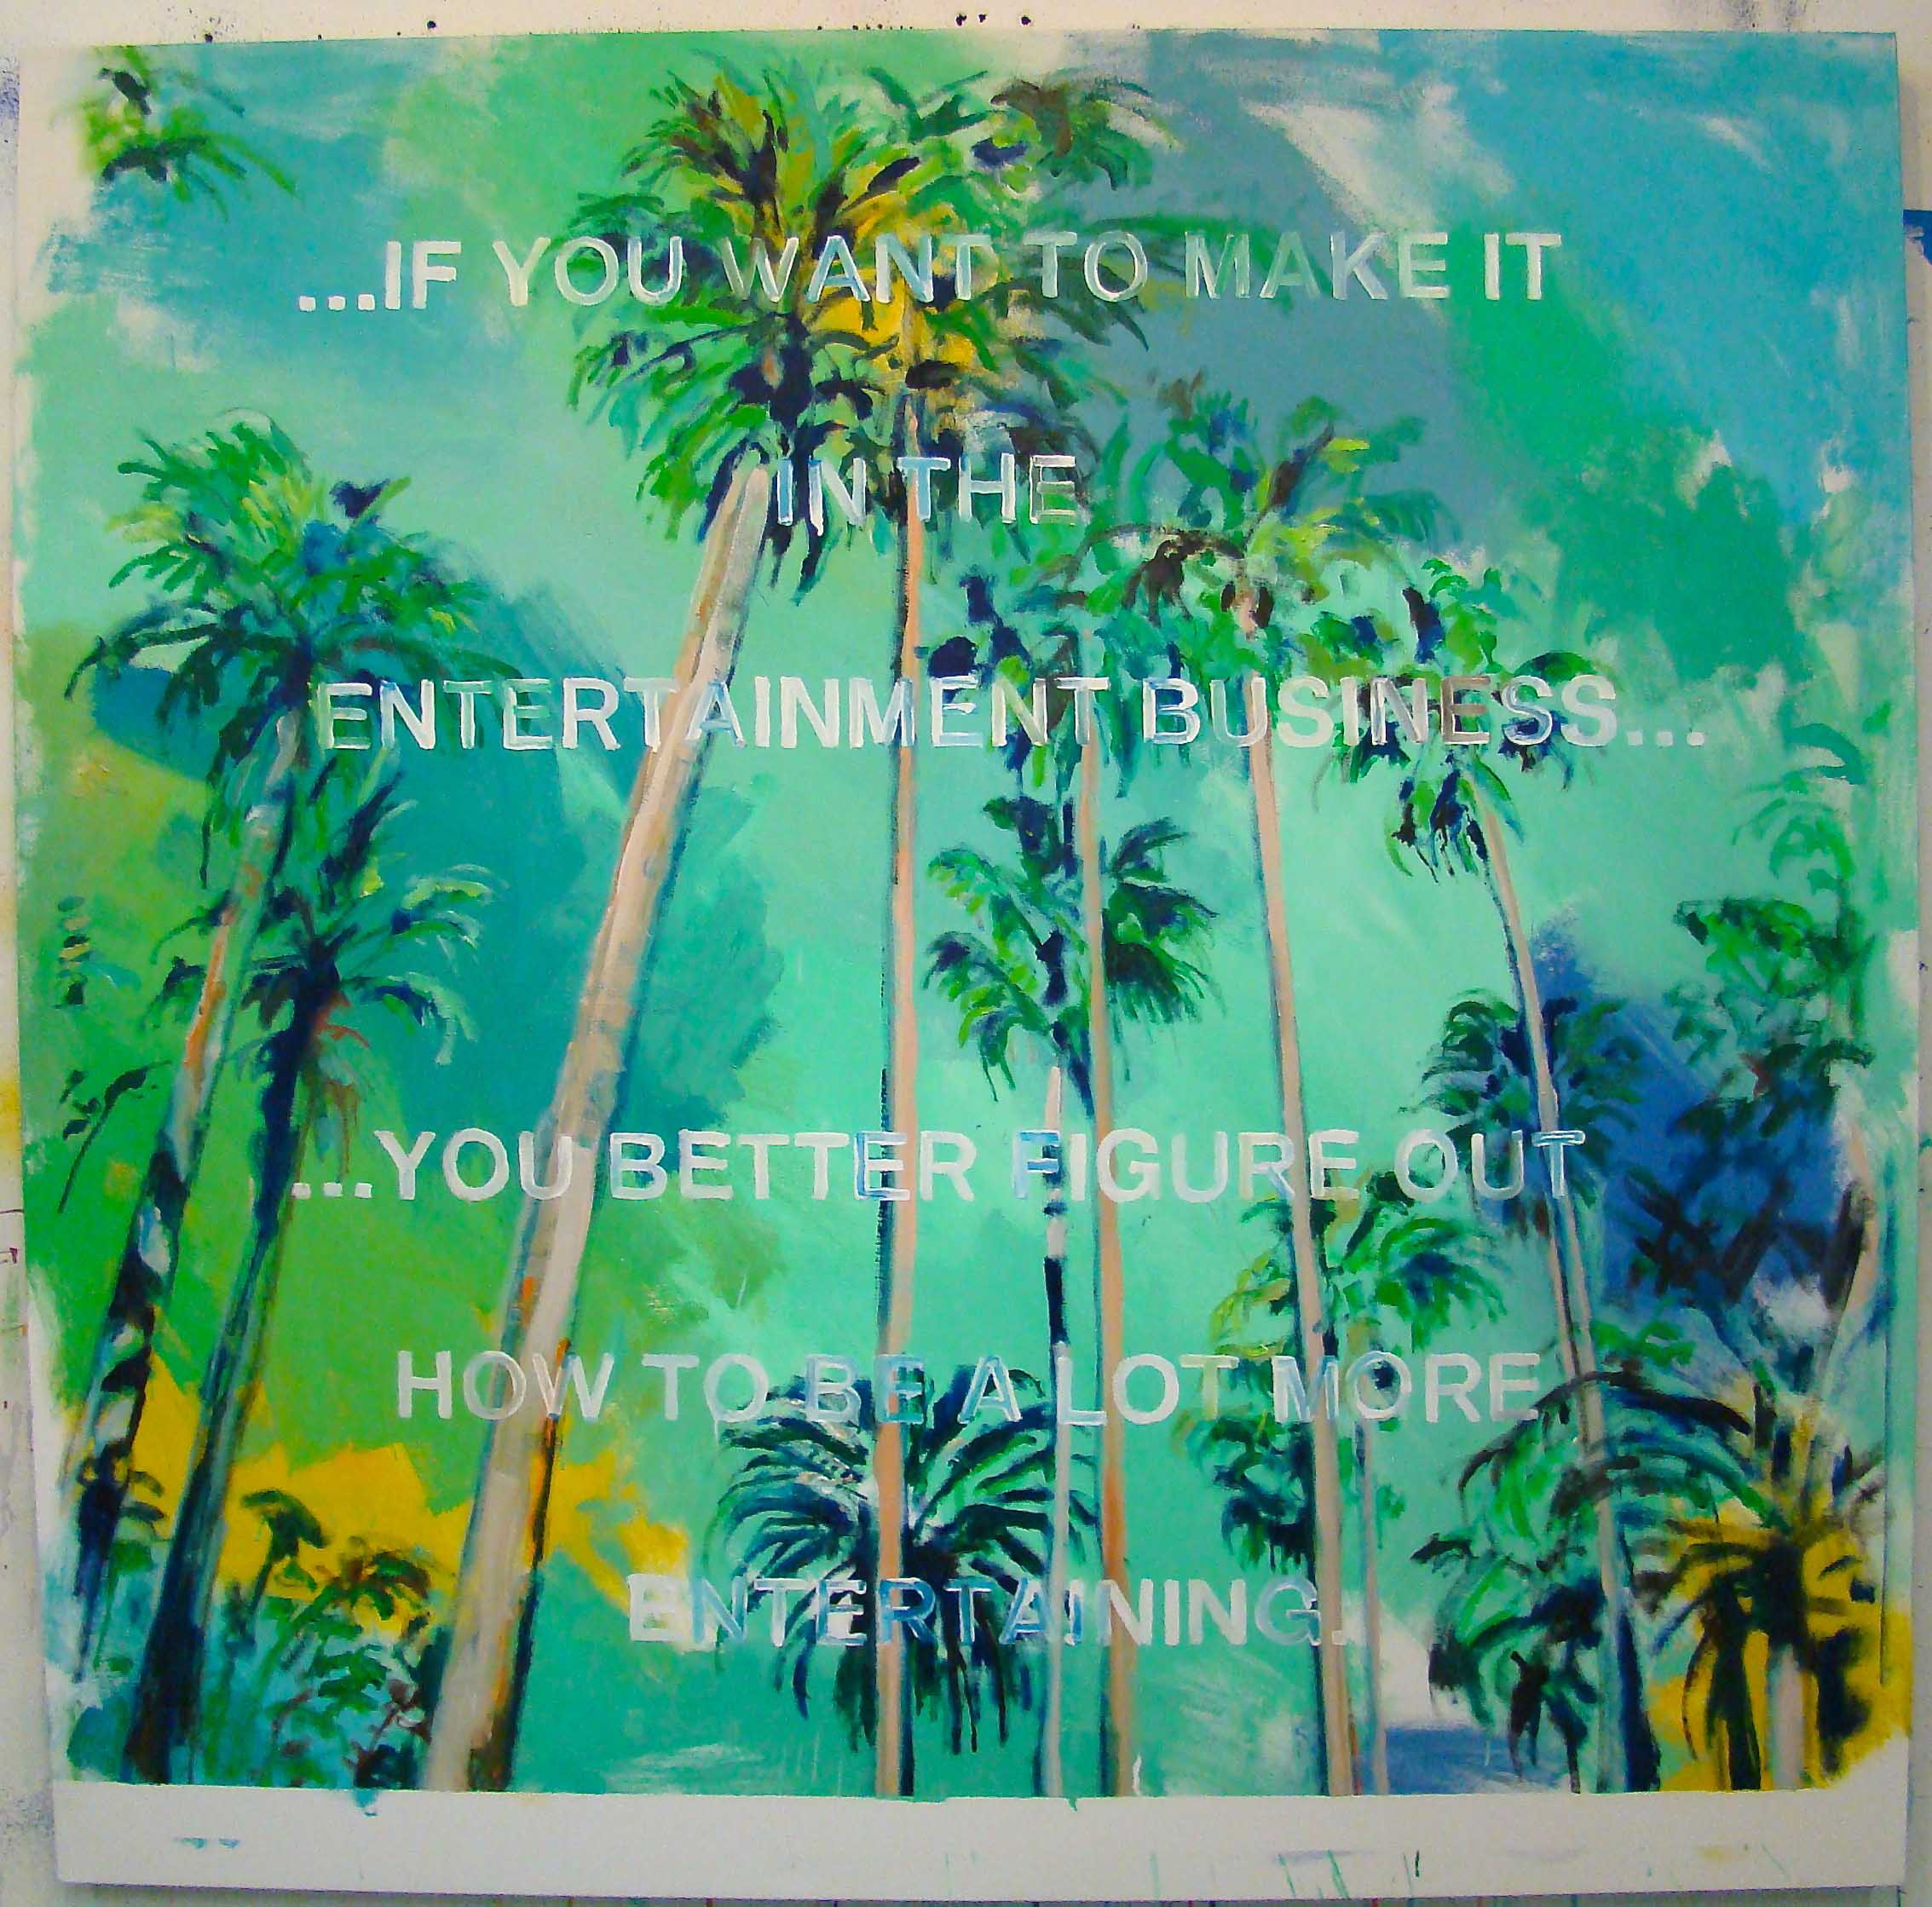 David Kramer, Note To Self, 2015, oil, enamel, newsprint, archival glue, canvas, 61 x 60 inches